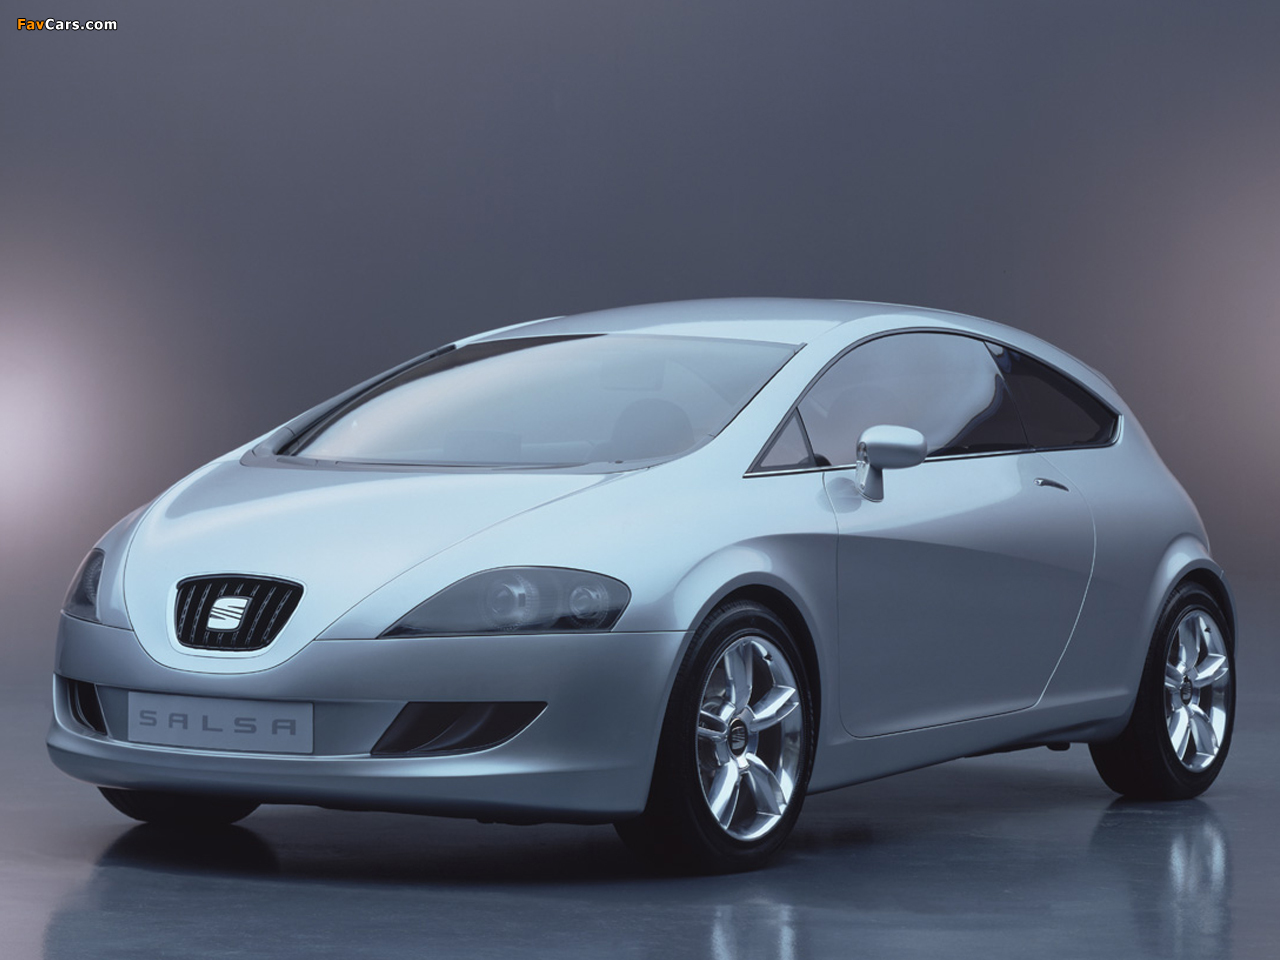 Seat Salsa Concept 2000 pictures (1280 x 960)